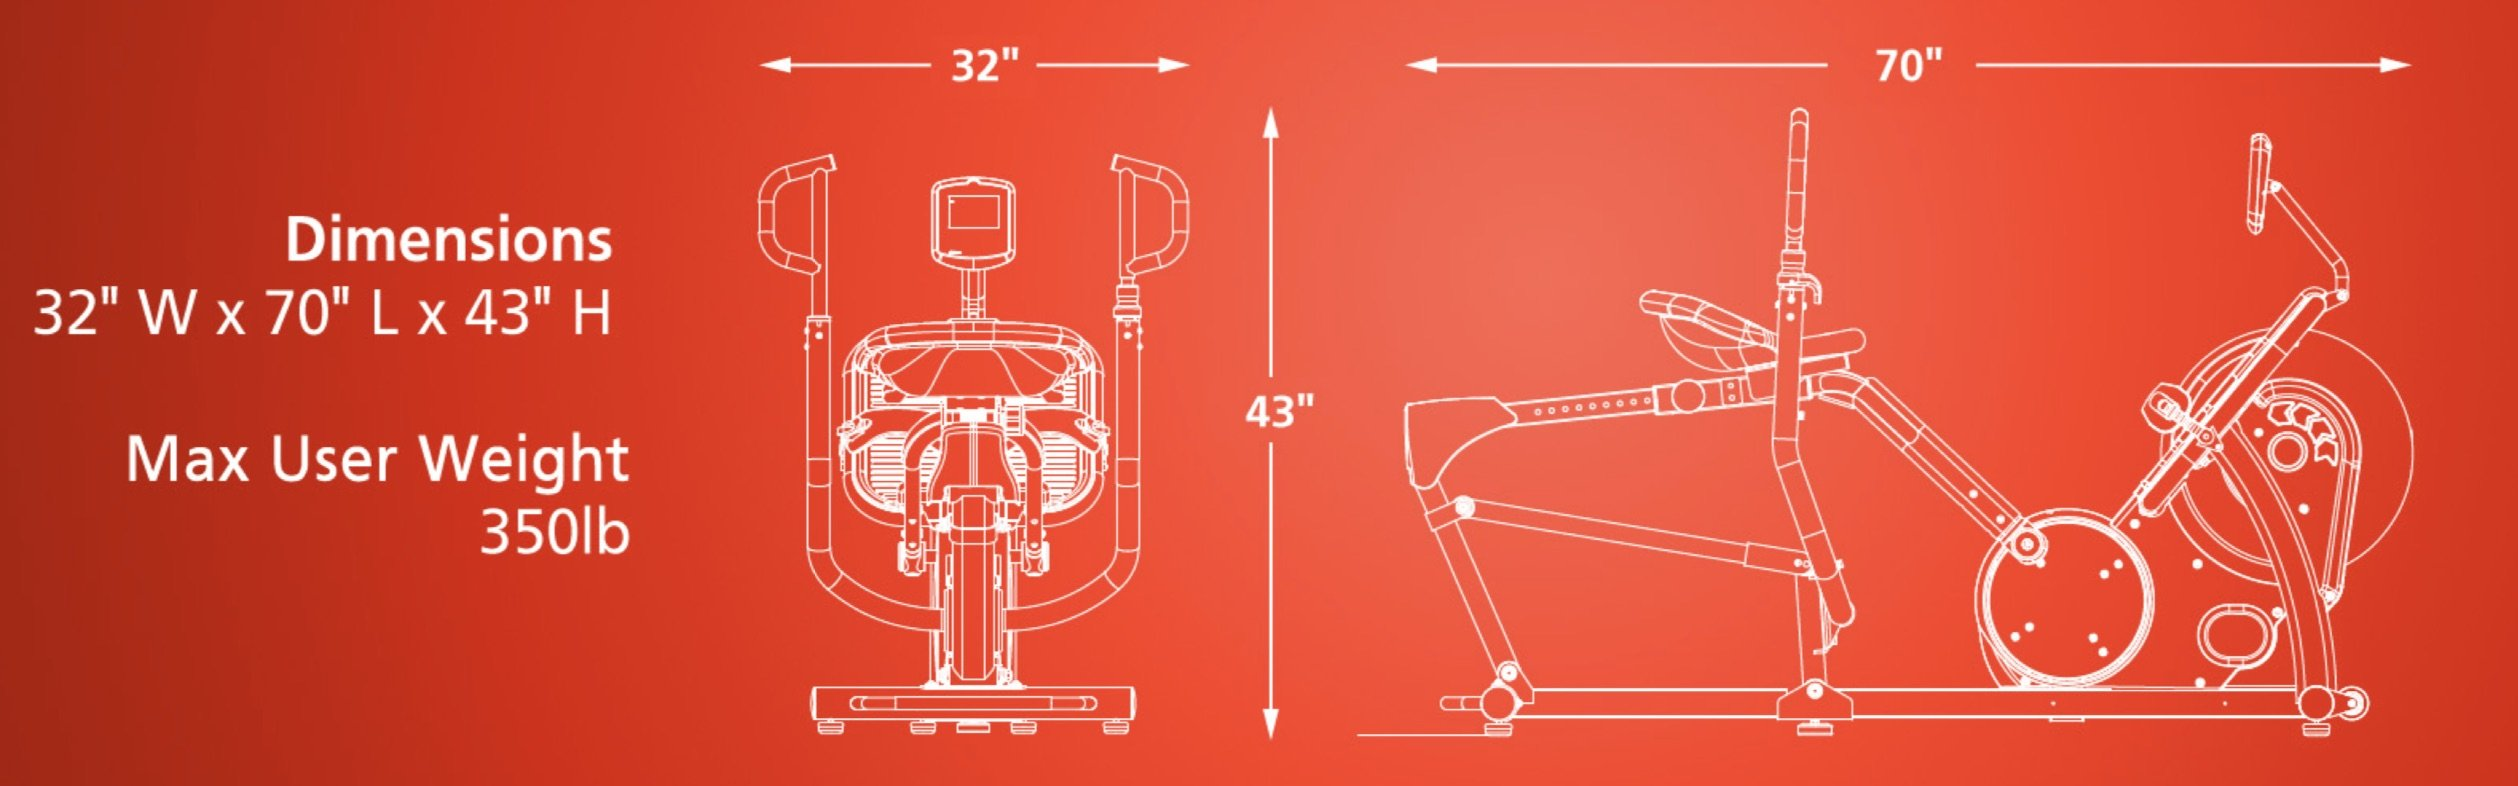 Inspire CR2 Cross Rower Dimensions